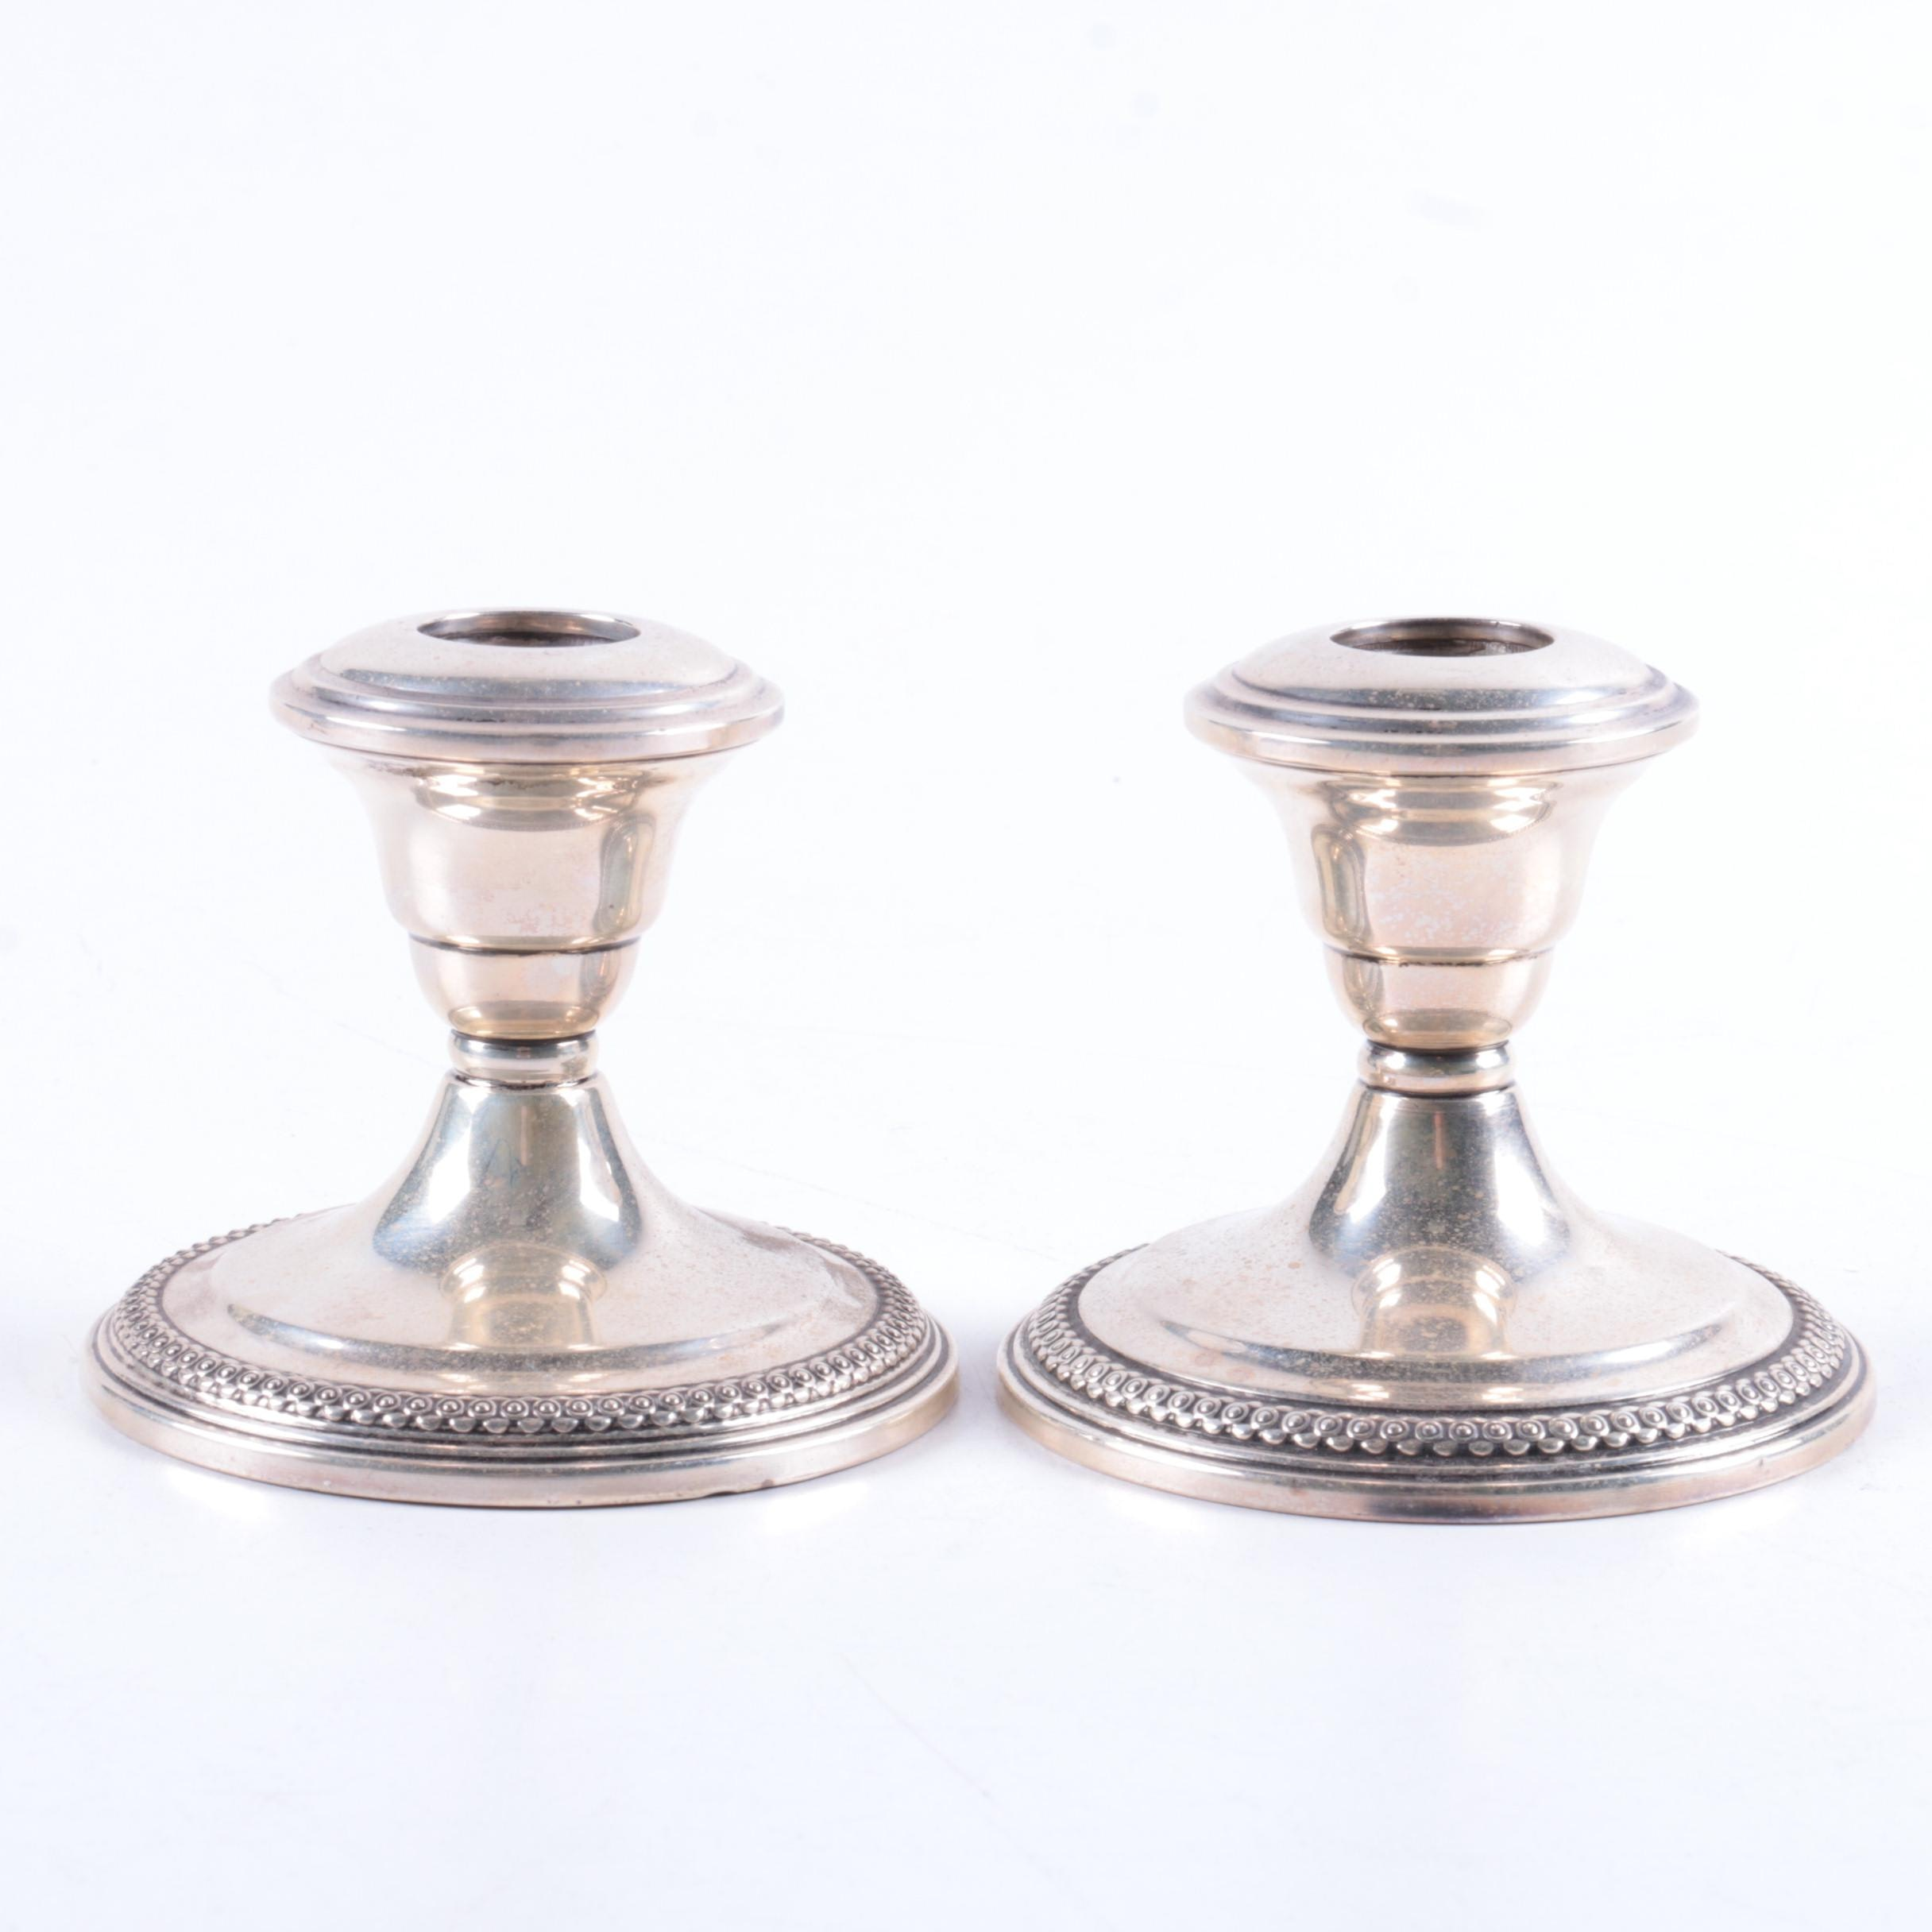 La Pierre Mfg. Co. Weighted Sterling Silver Candlestick Holders